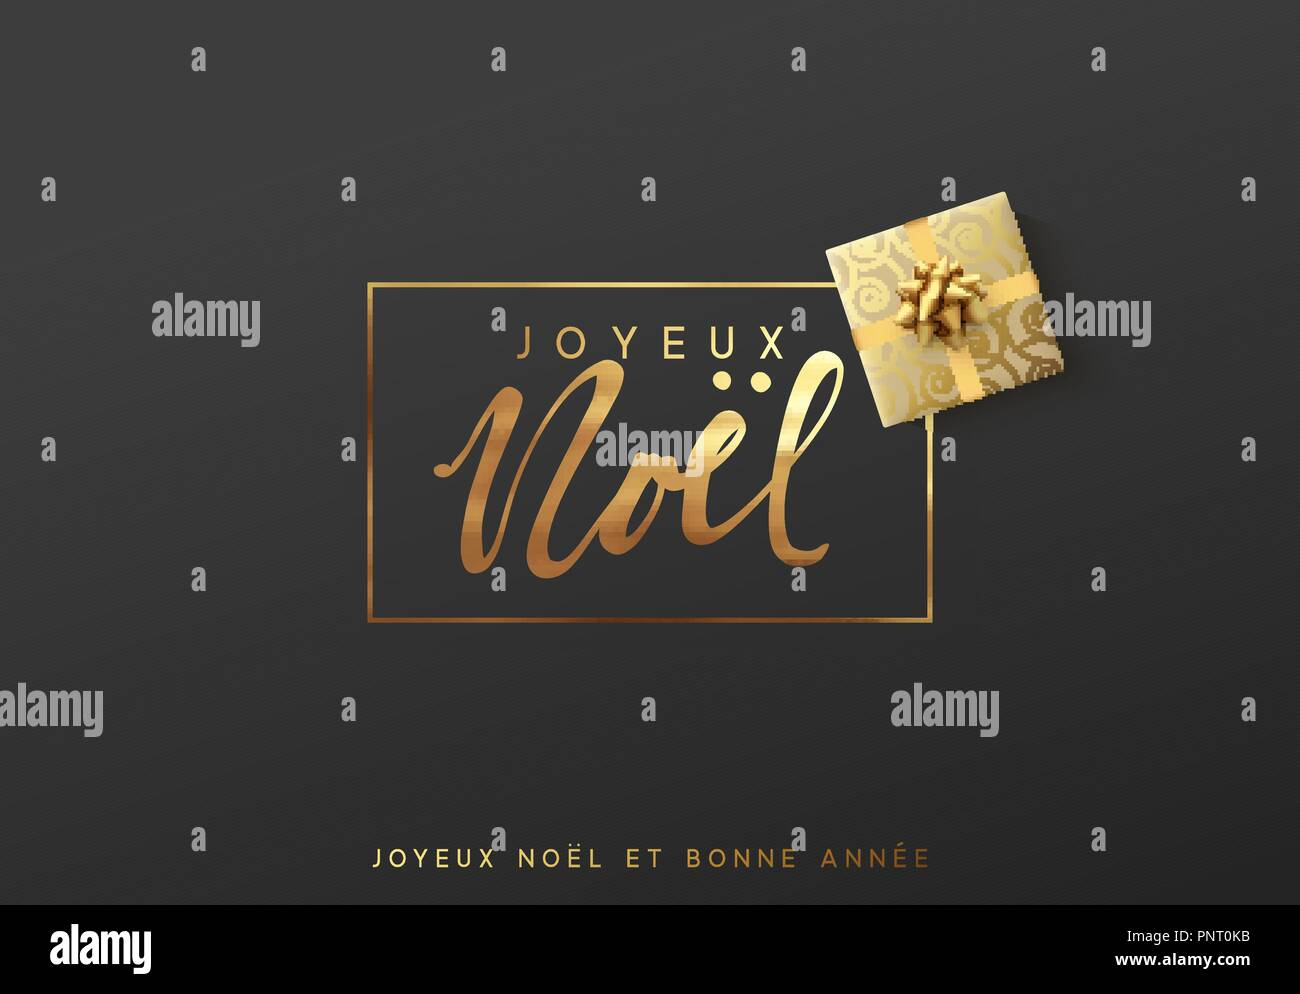 French text Joyeux Noel. Merry Christmas gold lettering in a frame background. - Stock Image